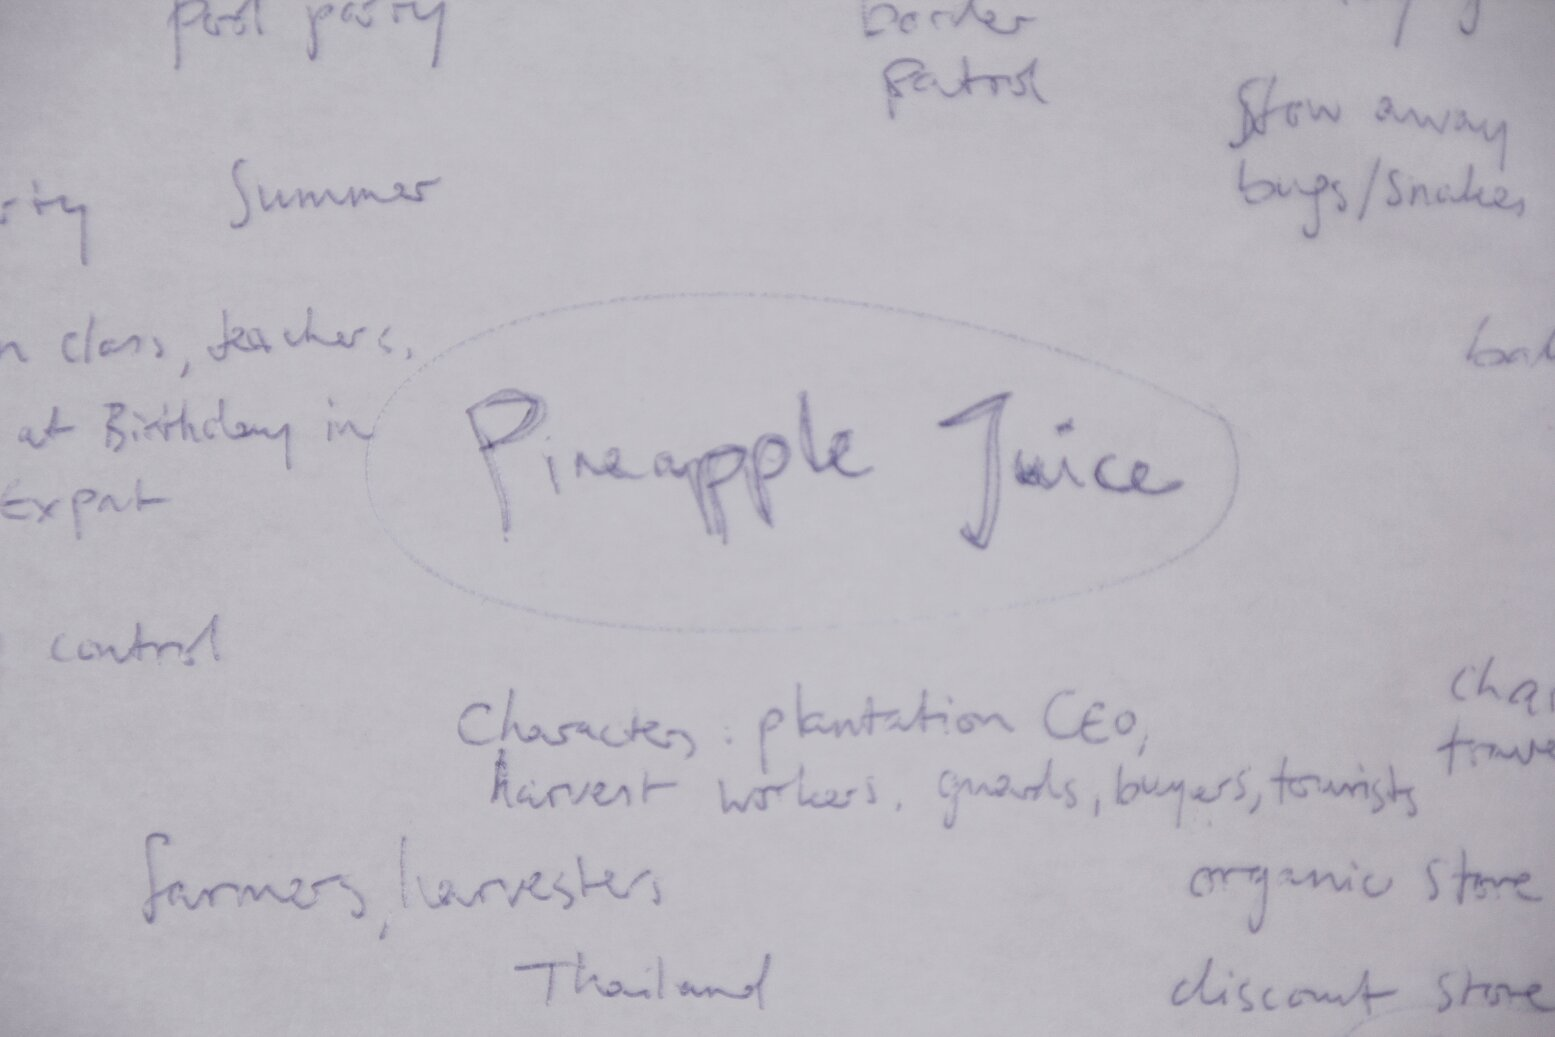 Pineapple Juice: A Shortstory